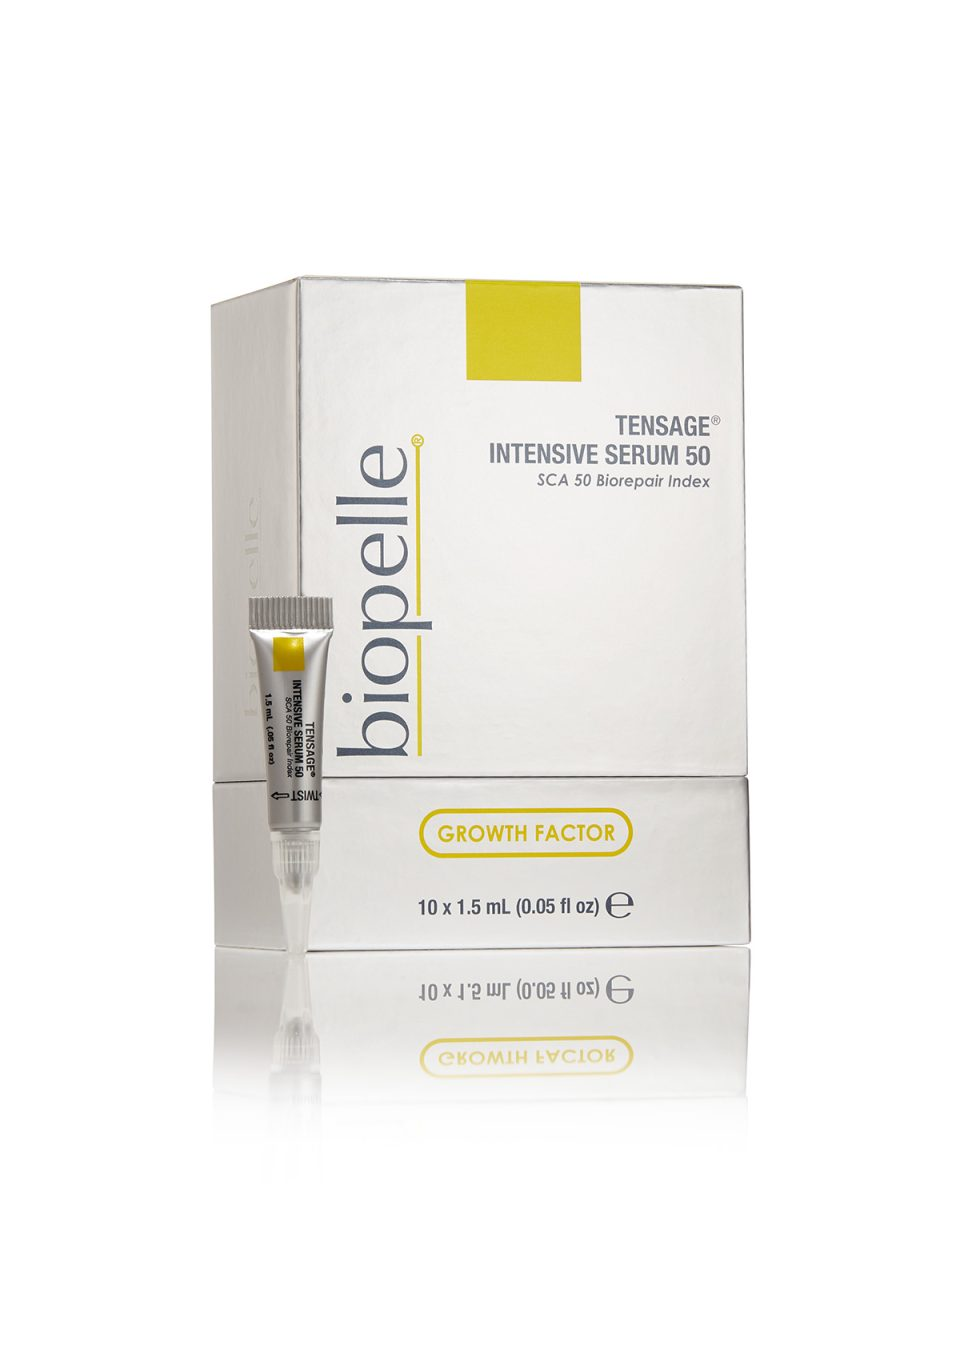 TENSAGE_INTENSIVE_SERUM_50_1ML_CLOSED